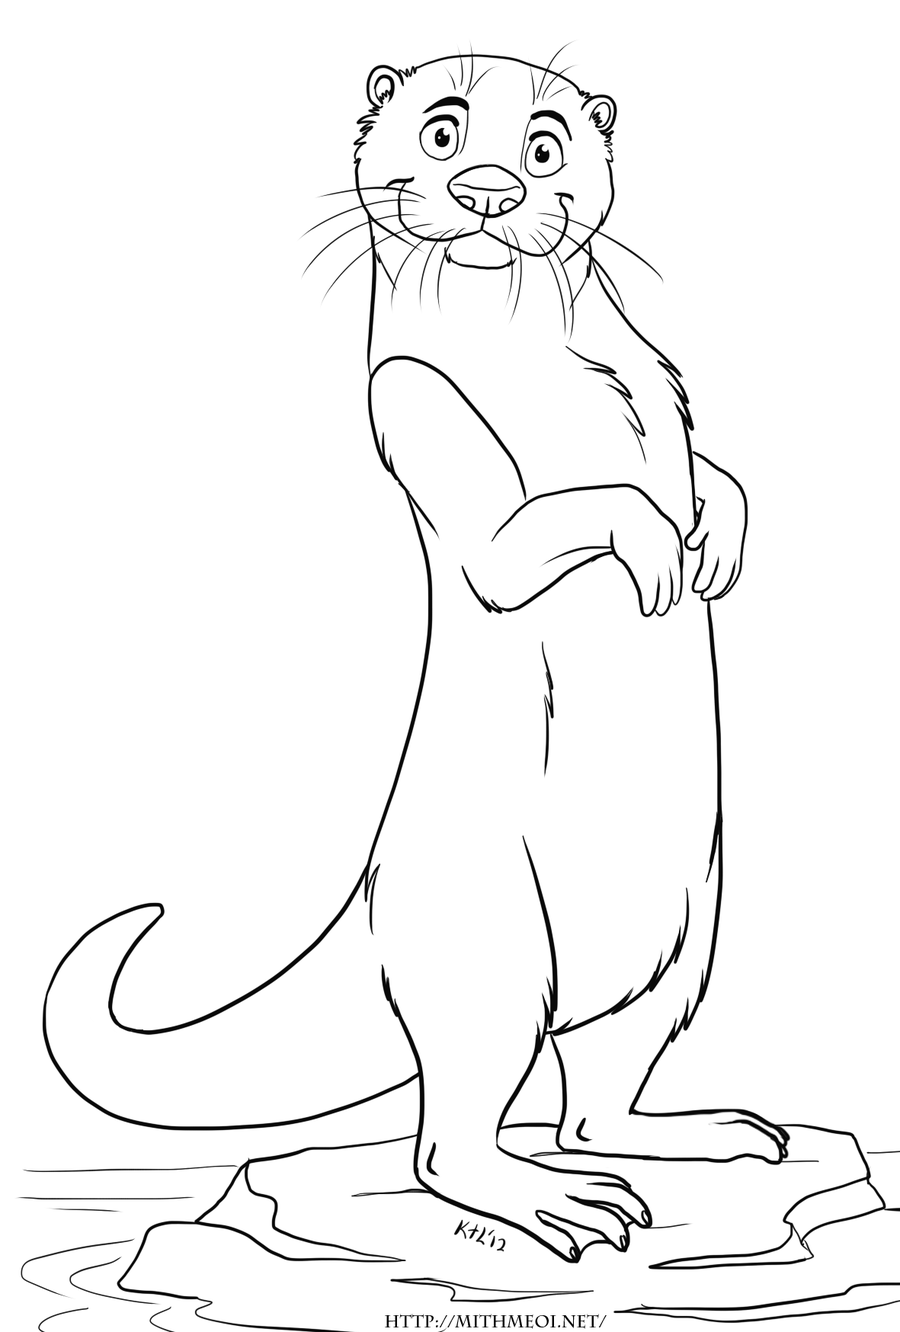 Otter Coloring Pages | Otter Romp | Pinterest | Otters, Coloring ...